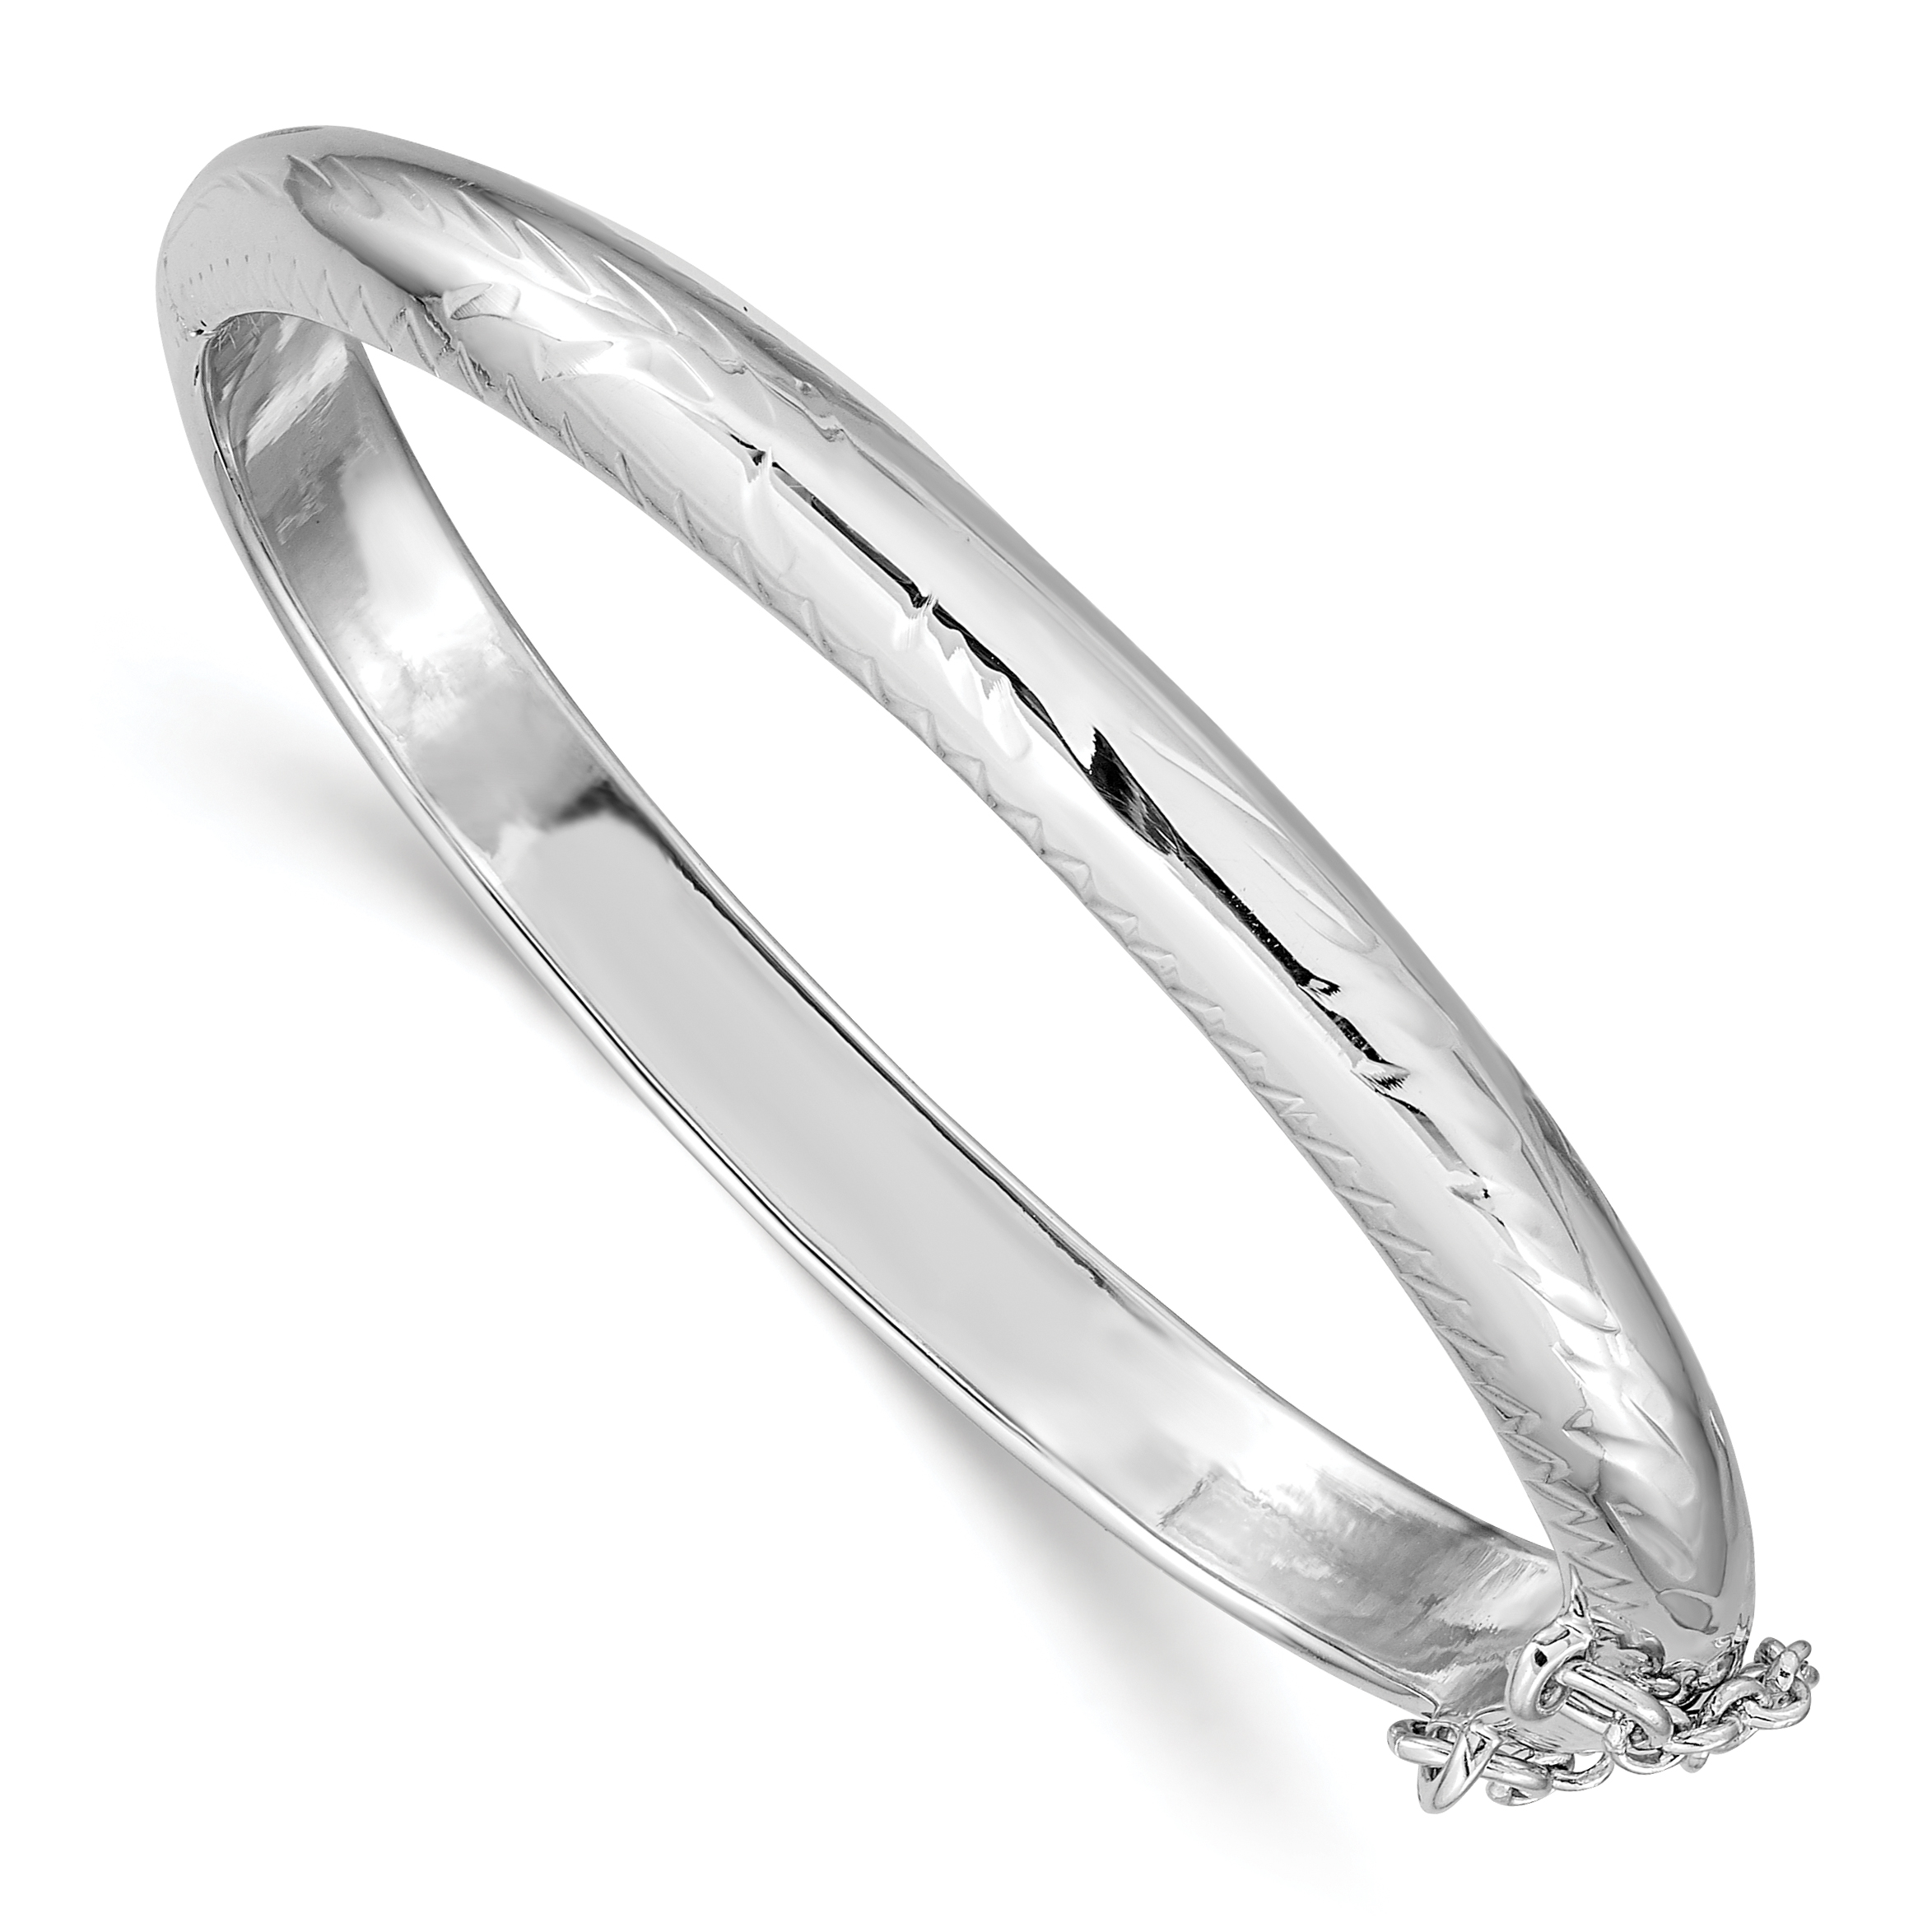 Plated Rhodium Plated Polished Cuff Bangle Top 10 Jewelry Gift Sterling Silver Rhod